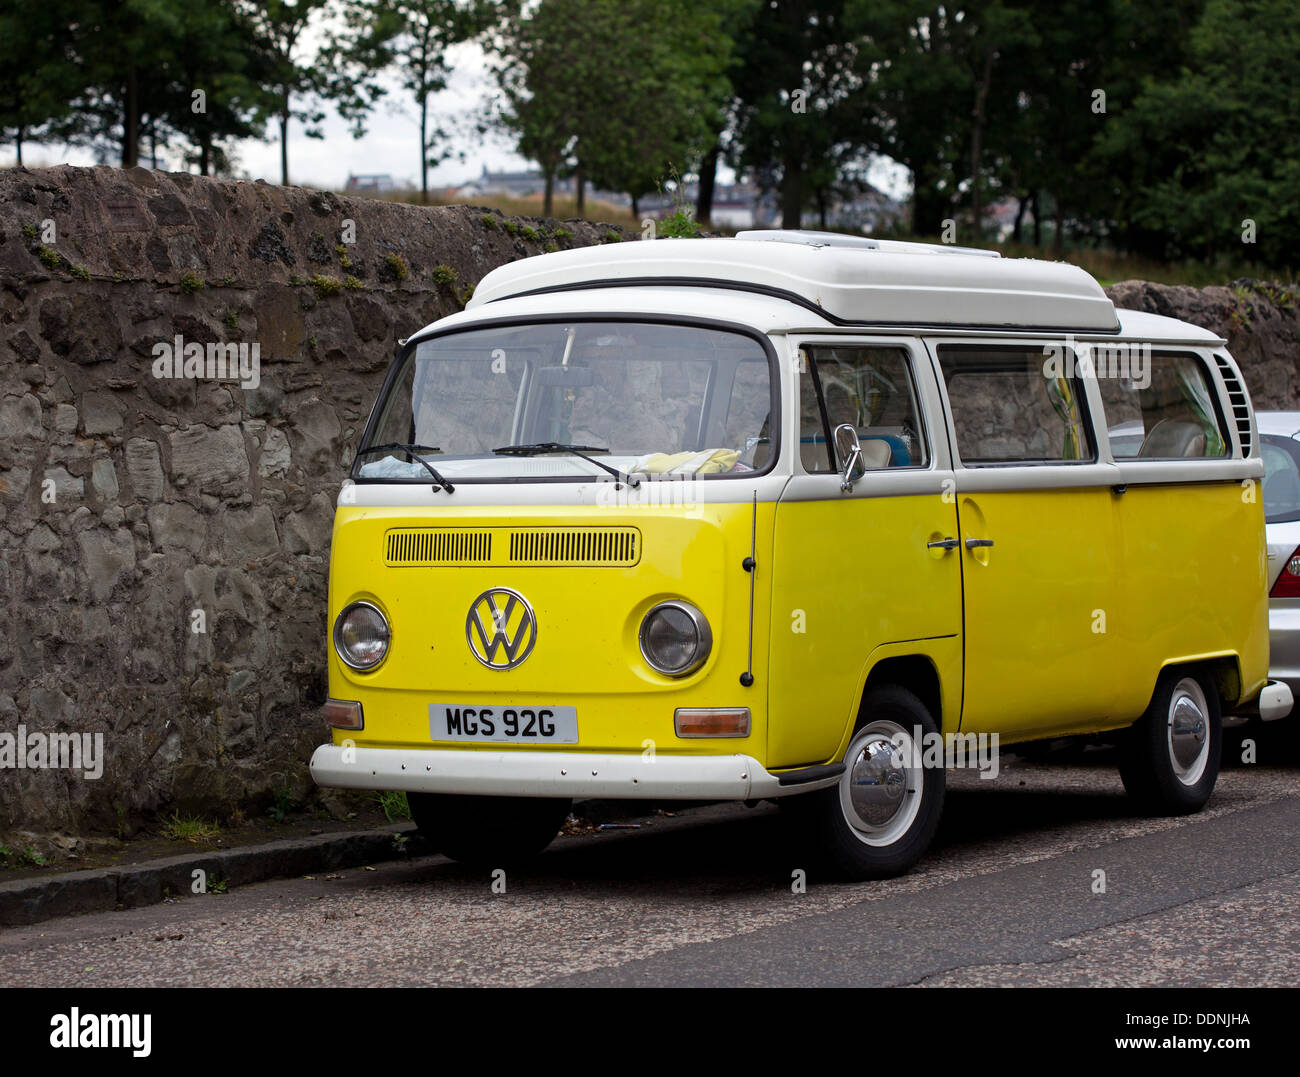 Volkswagen Camper Van Yellow And White Stock Photo Alamy